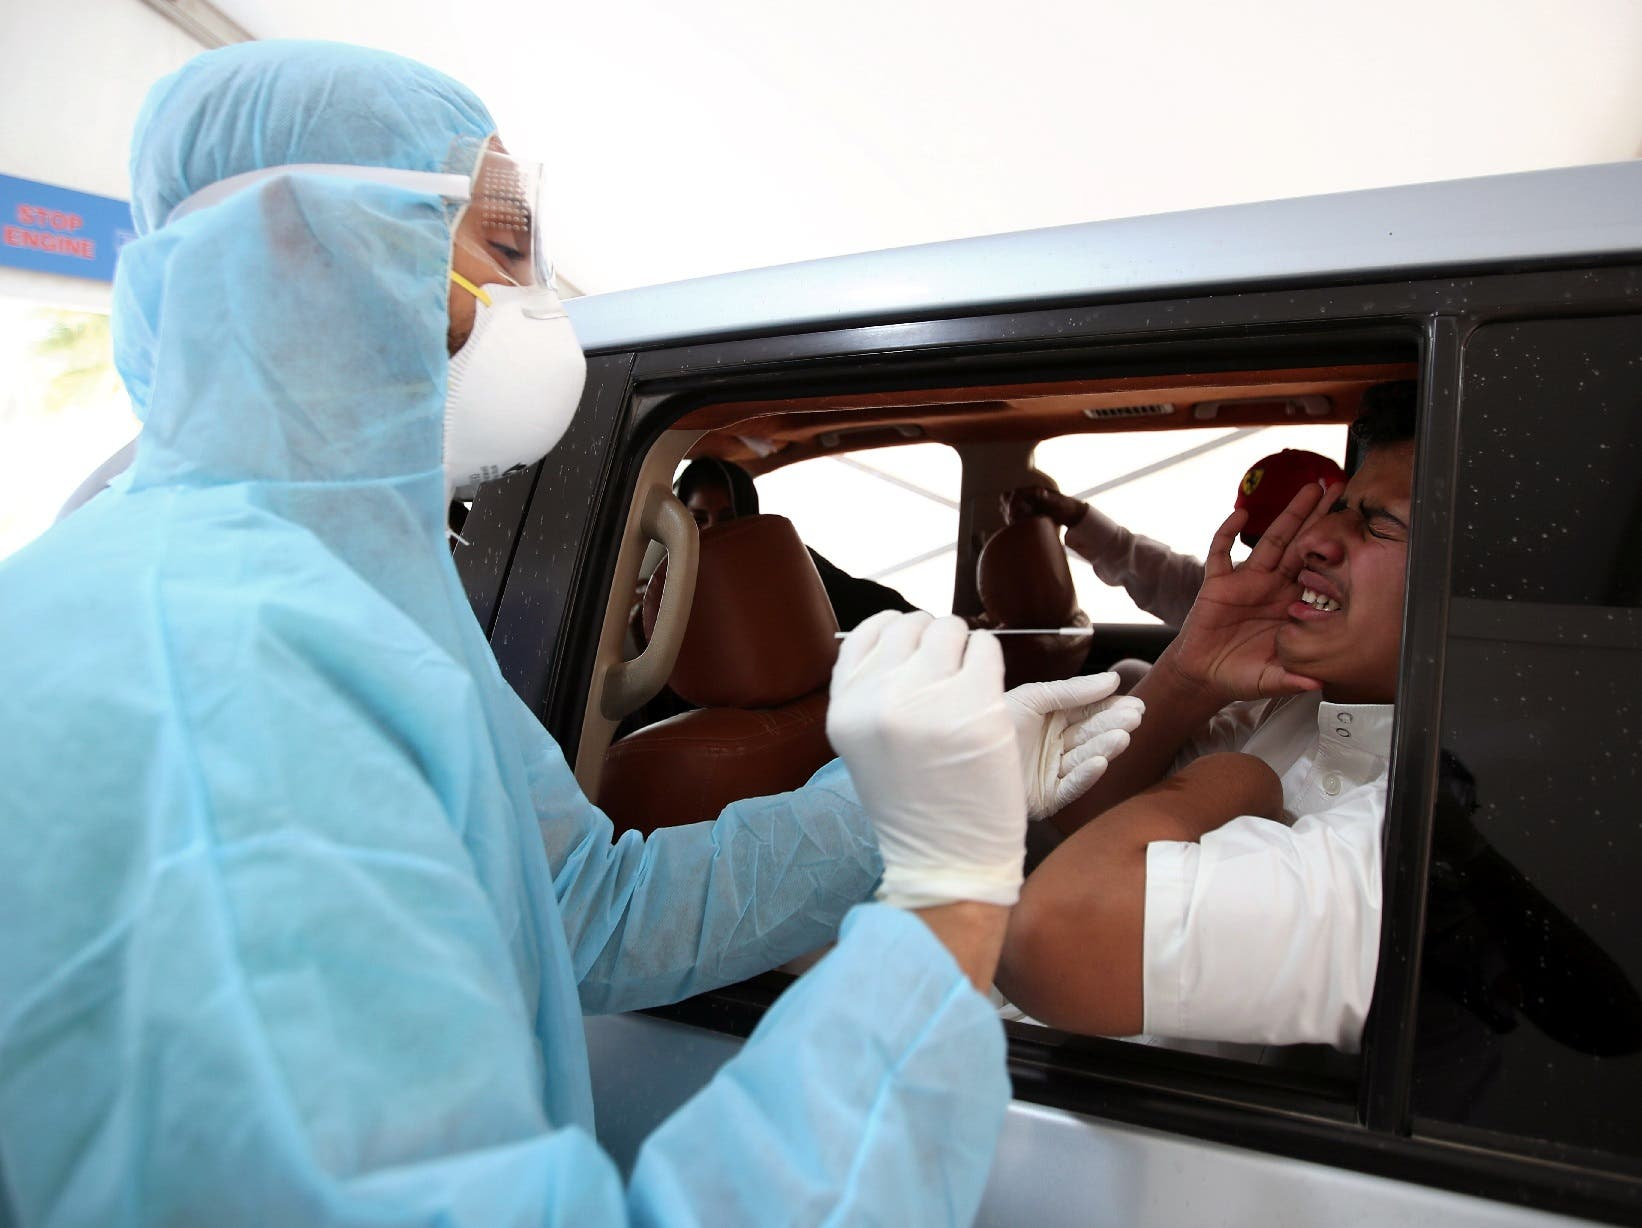 A member of medical staff wearing a protective face mask and gloves takes a swab from a man during drive-thru coronavirus disease (COVID-19) testing at Bahrain Exhibition Center, in Manama, Bahrain April 9, 2020. (Reuters)